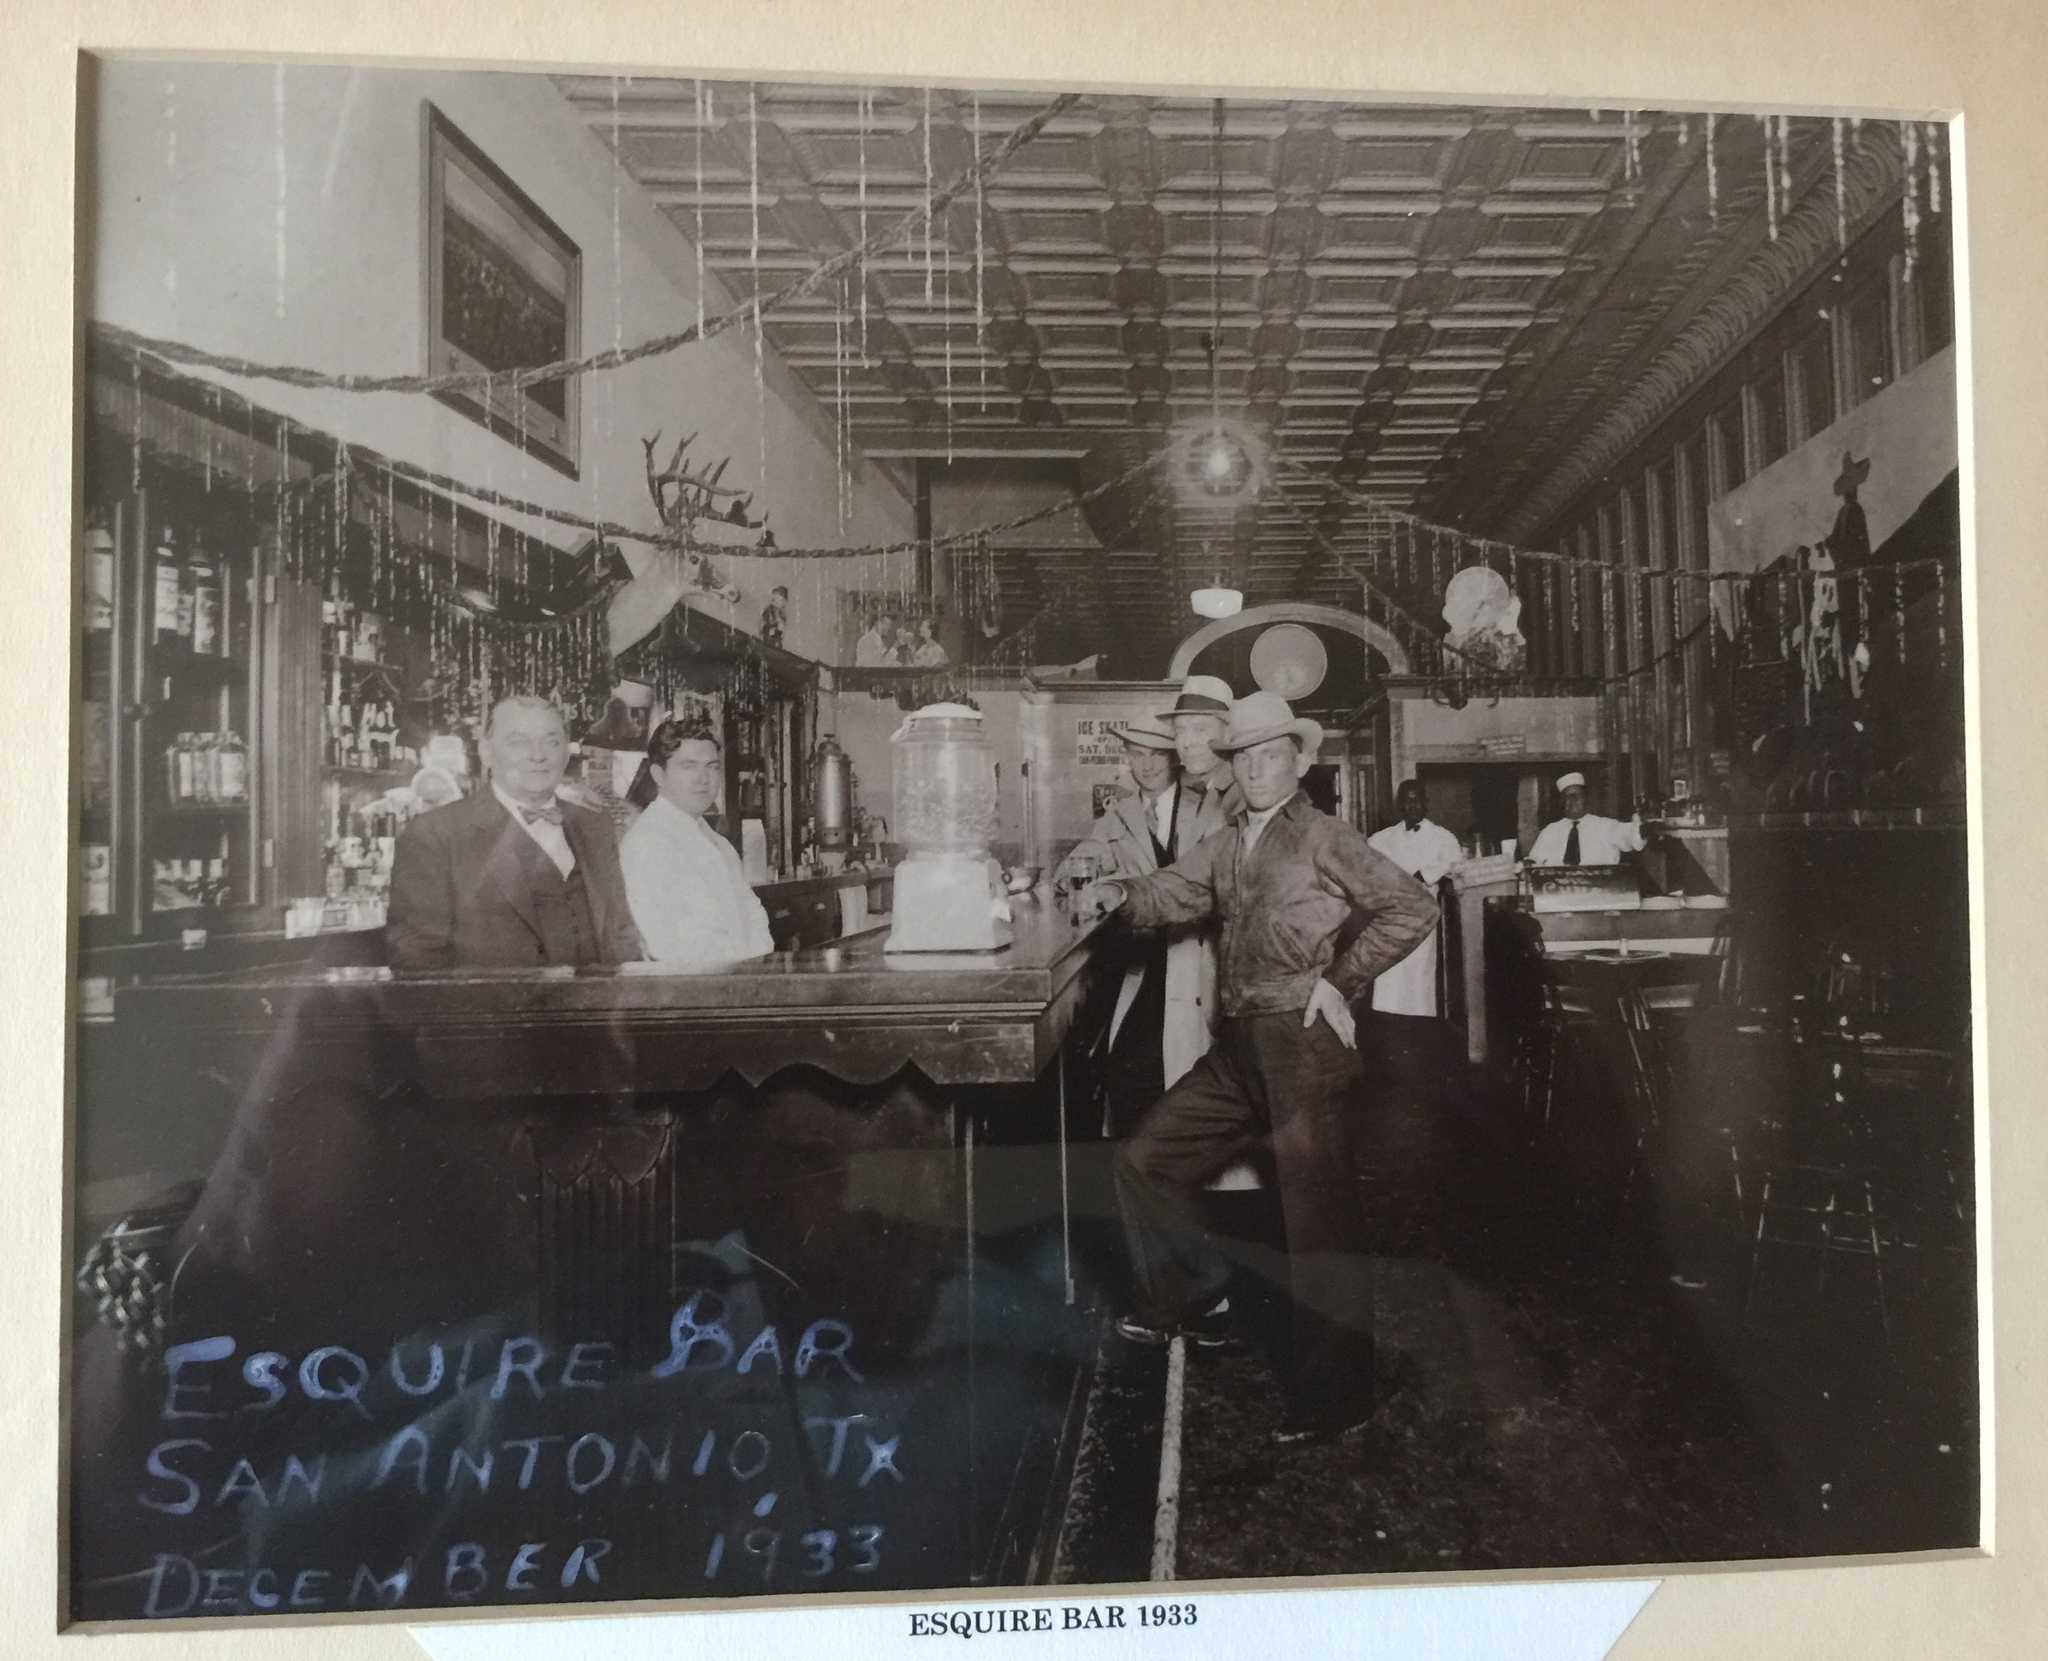 Vintage Photo Gives Glimpse Inside The Esquire Tavern In